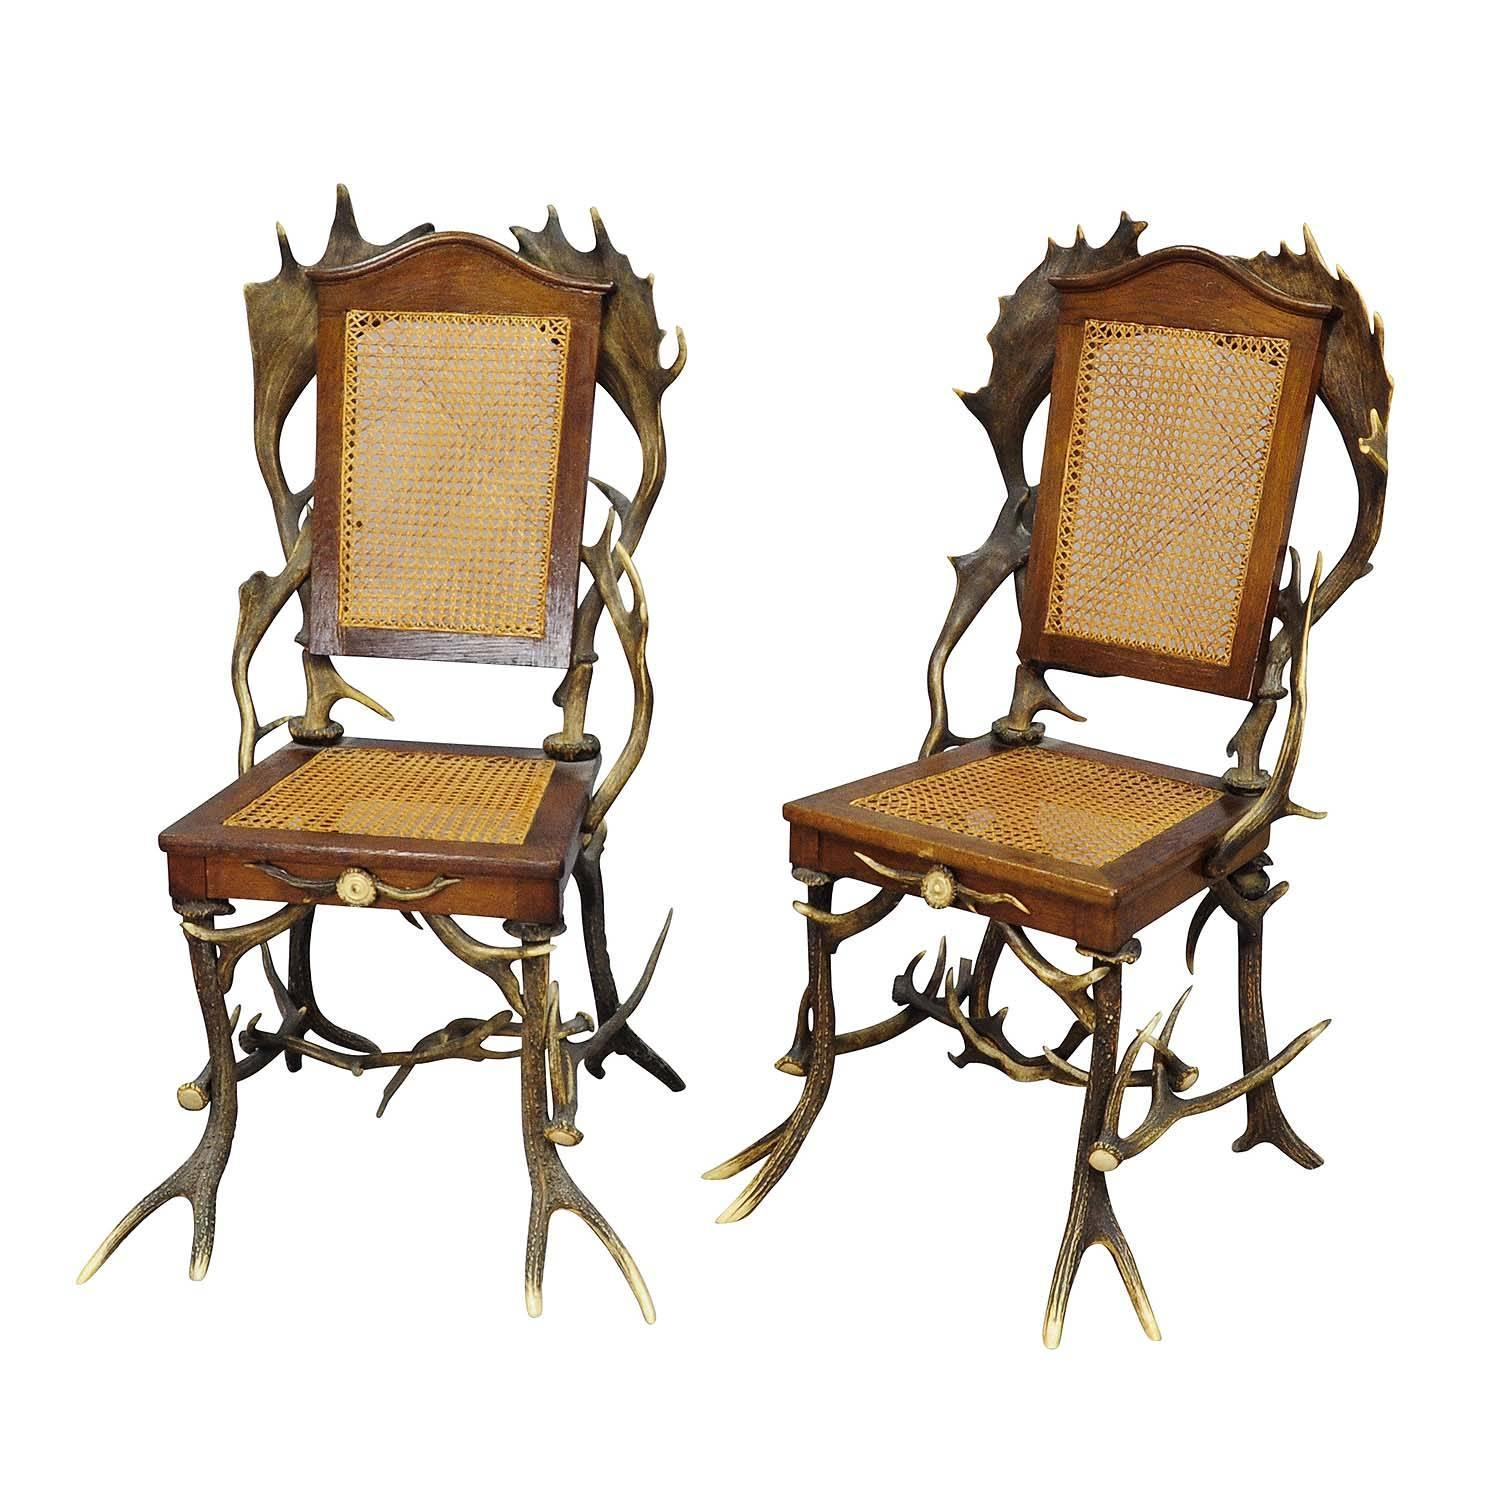 Pair Antique Rustic Cabin Chairs Circa 1900 For Sale At 1stdibs